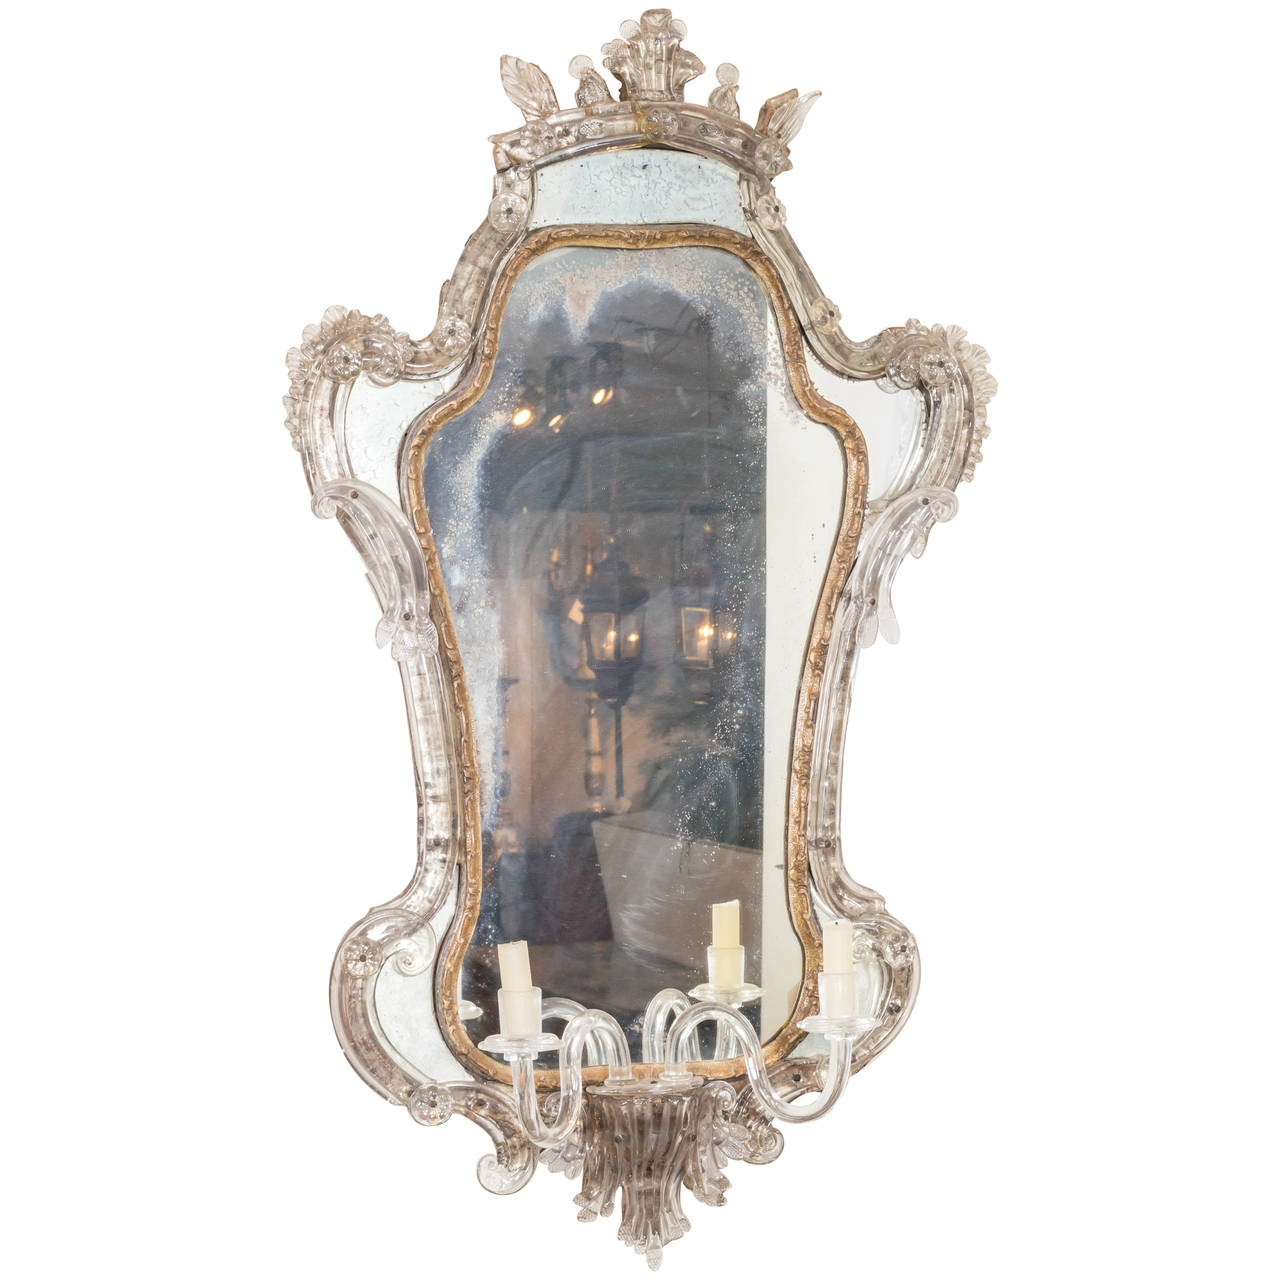 Antique Venetian Glass Mirror With Blown Glass Sconce Italy Circa In Venetian Glass Mirrors Antique (Image 4 of 15)